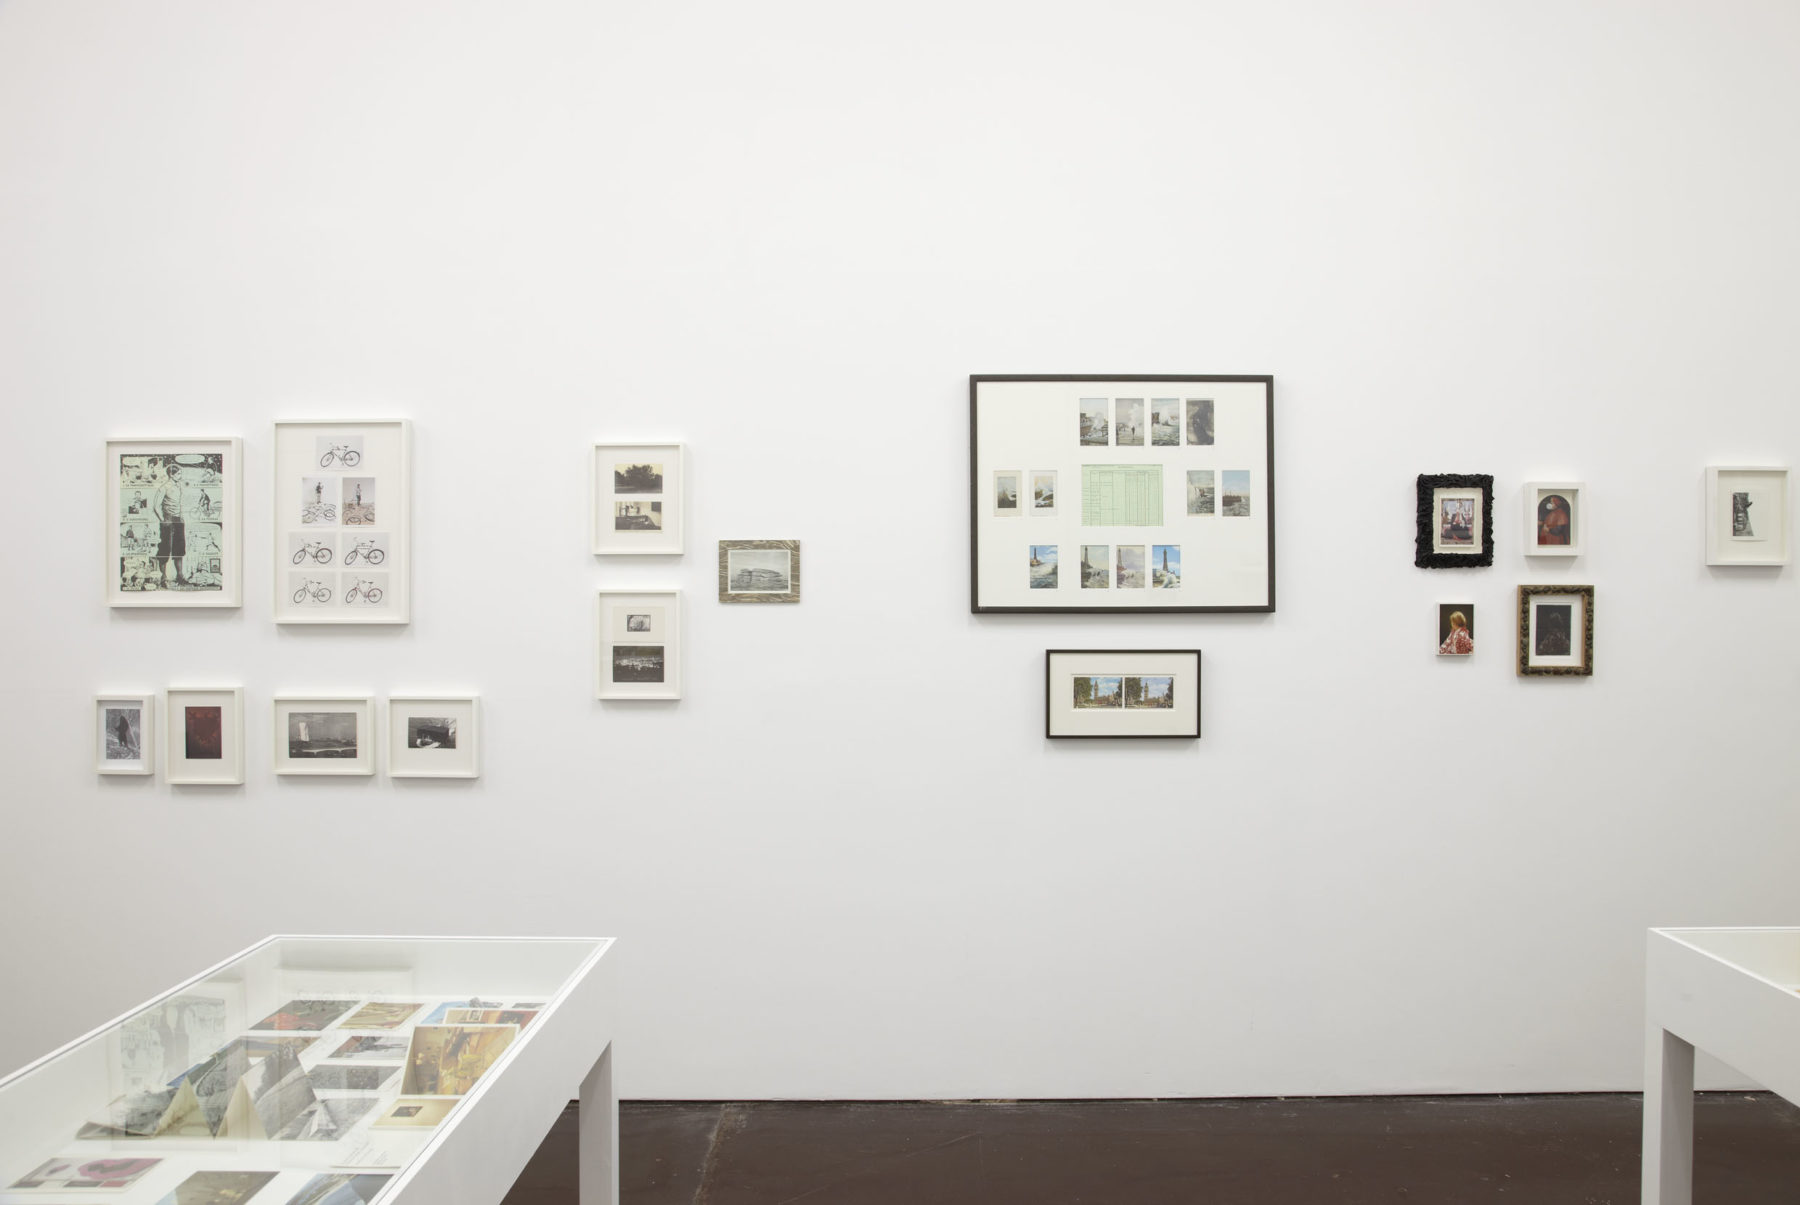 The Artists' Postcard Show (2012) Installation view, Spike Island, Bristol. Photograph by Stuart Whipps